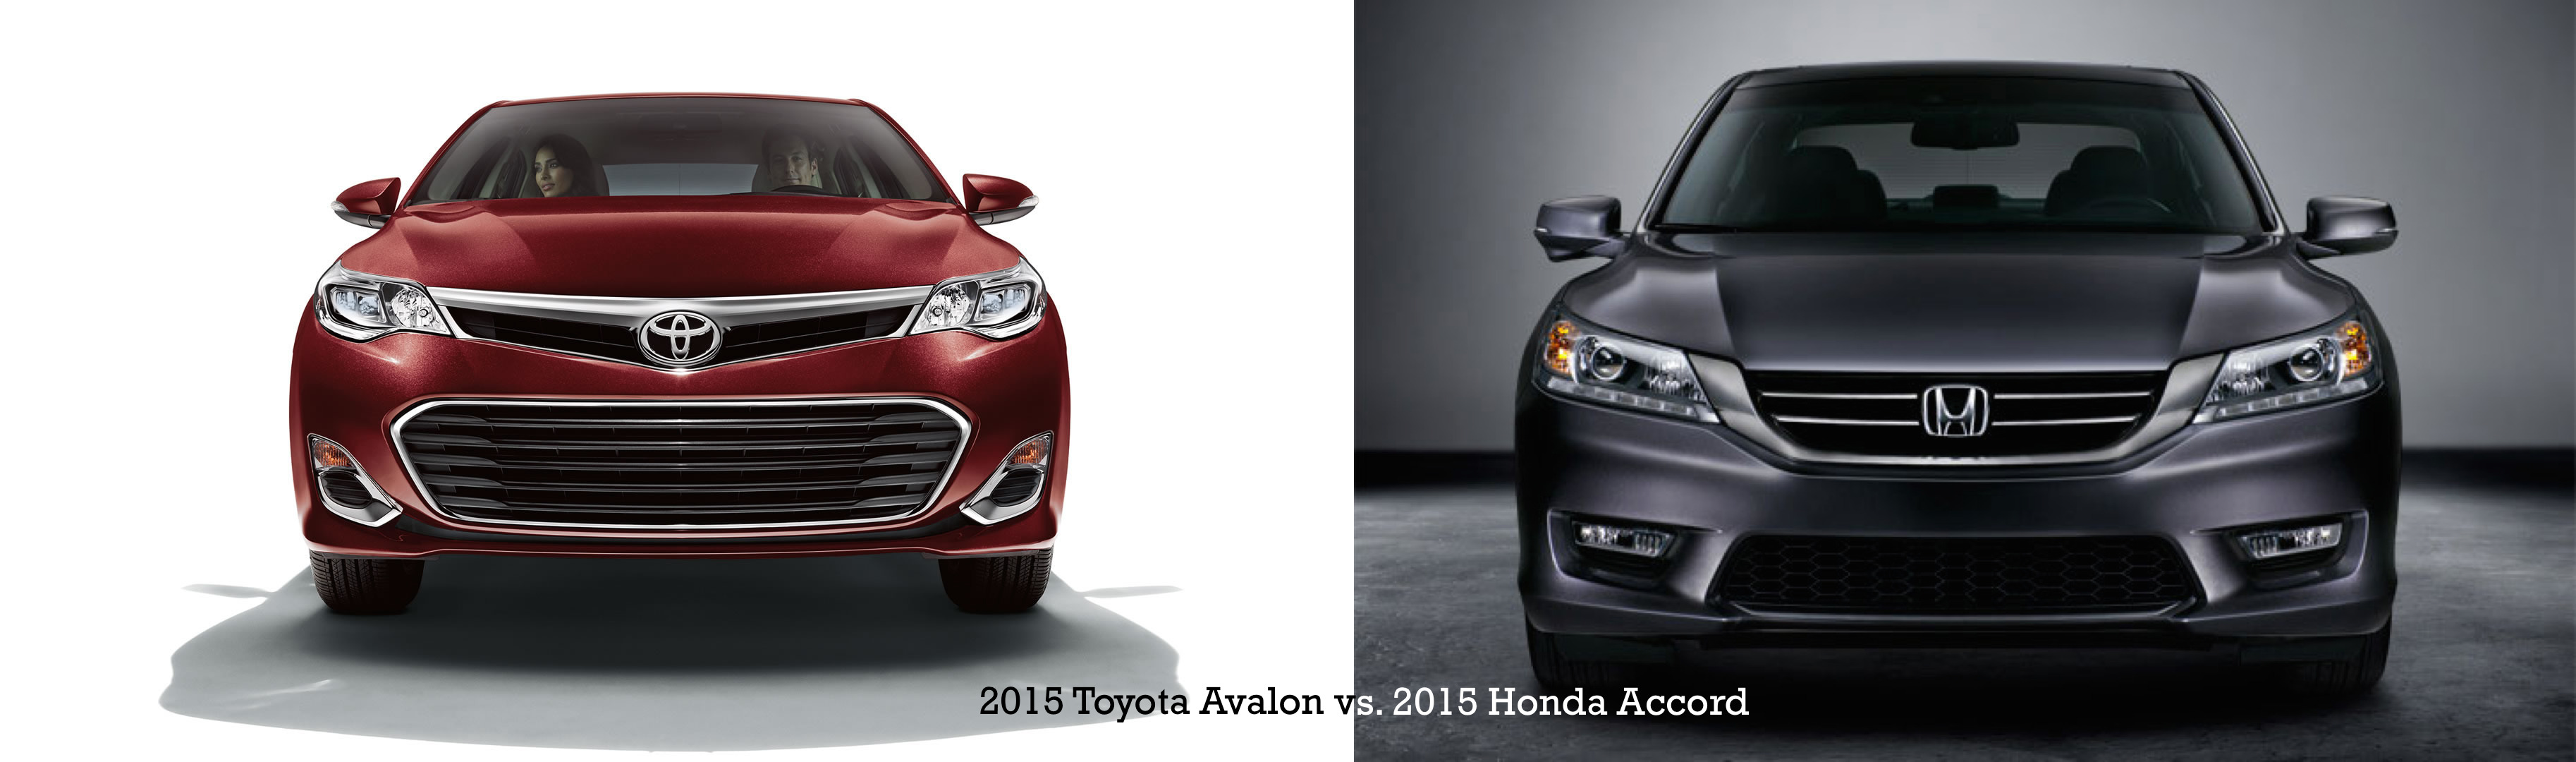 2015 Toyota Avalon vs. 2015 Honda Accord